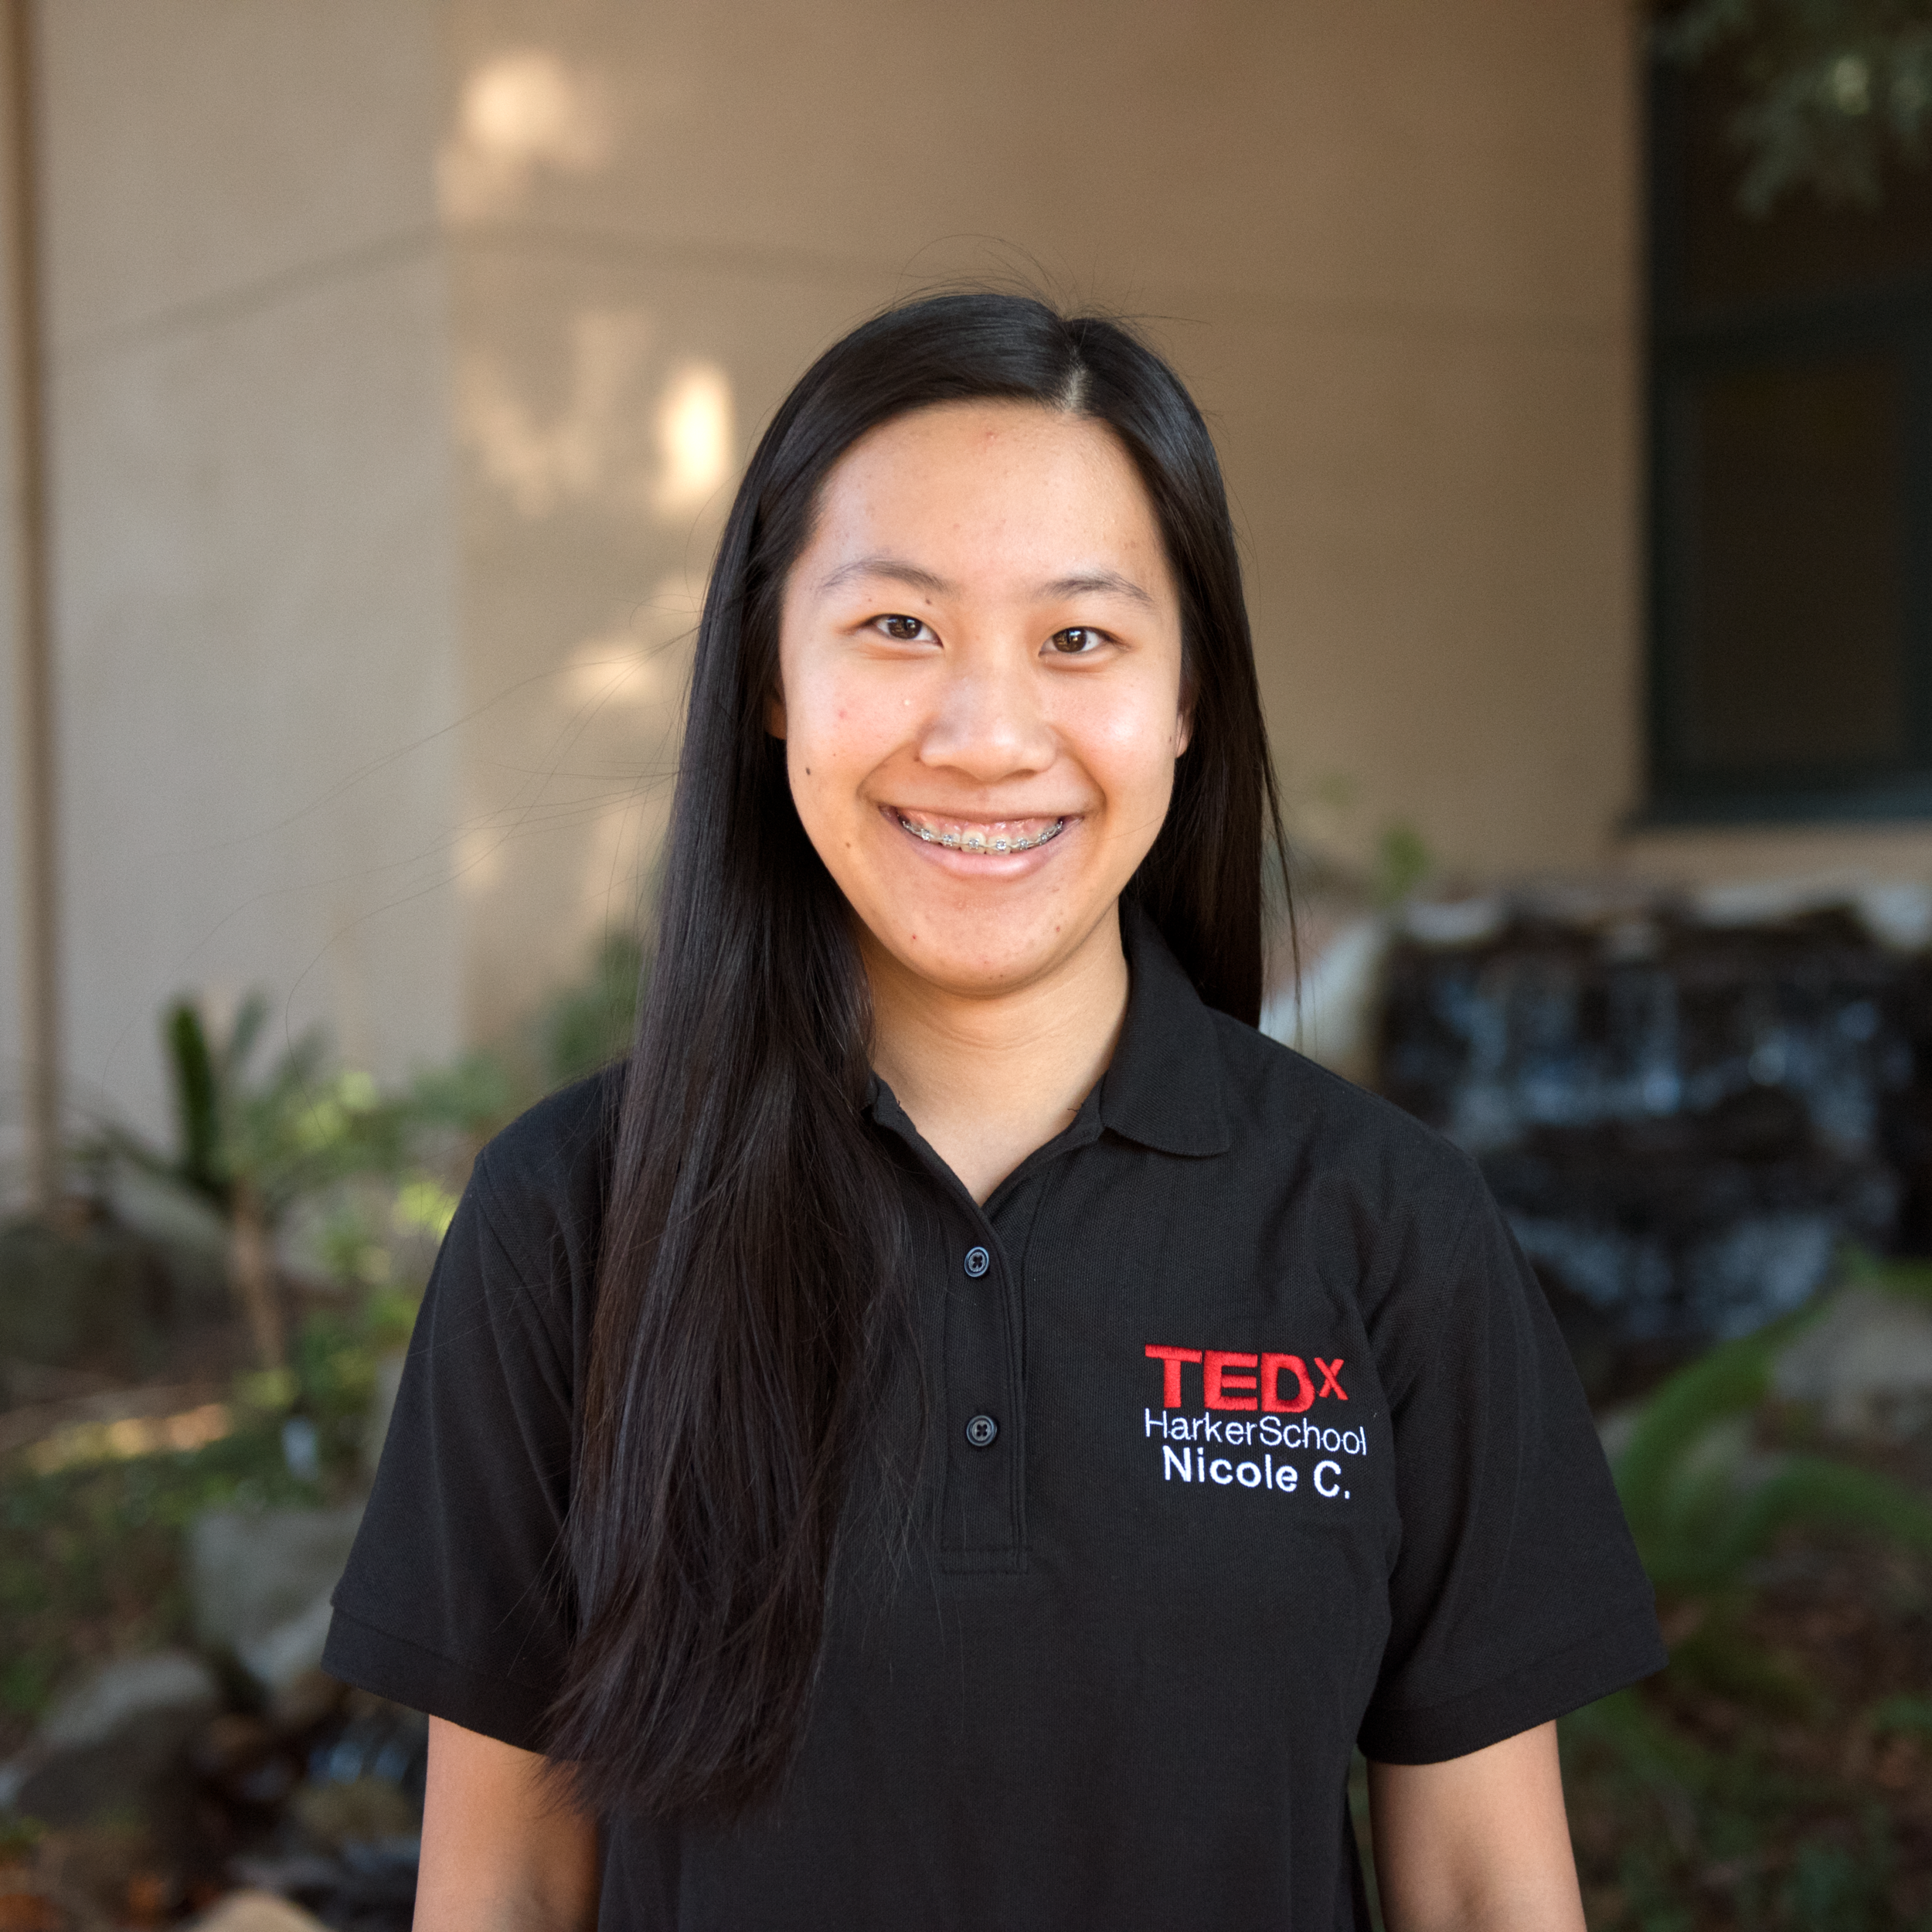 Nicole Chen - Nicole is a junior at the Harker School in San Jose and the Director of Public Relations for TEDxHarkerSchool. Aside from TEDxHarkerSchool, she is the executive features editor for Harker's online student-run publication, Harker Aquila. Nicole is also an officer of Harker's Economics club and the secretary of Japanese National Honor Society.